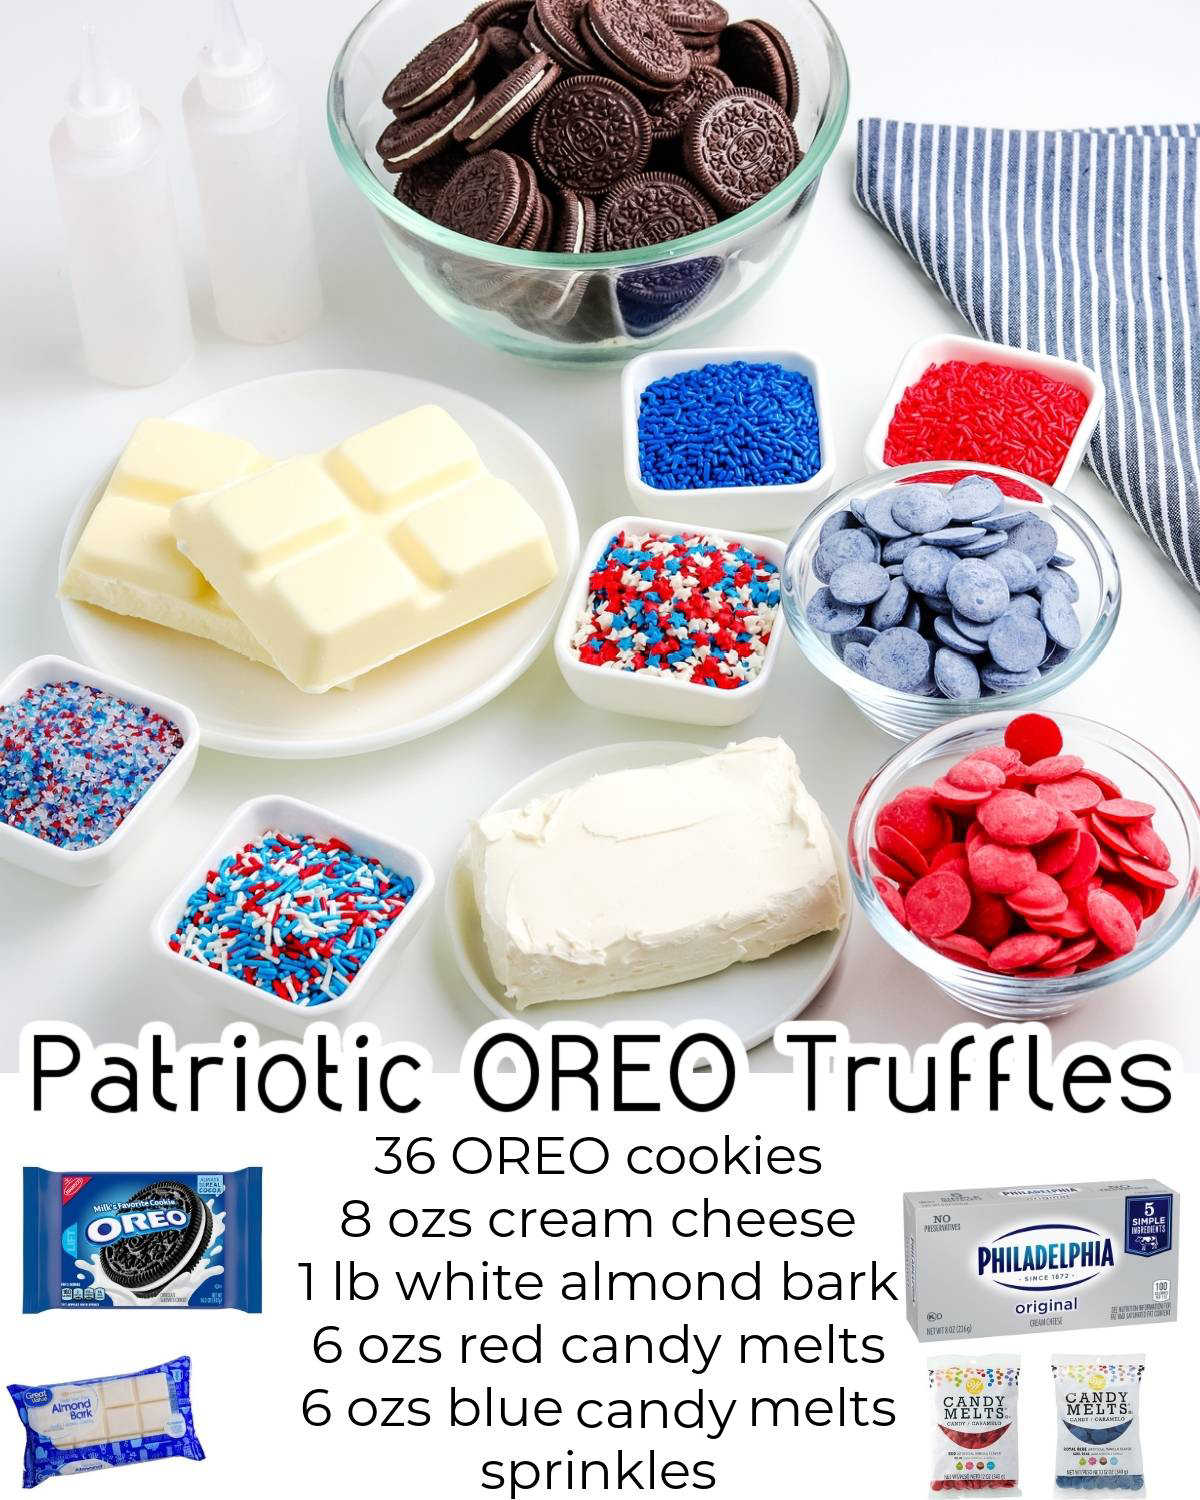 These Oreo Cream Cheese Truffles are all dressed up for patriotic holidays like Memorial Day, Fourth of July, and Labor Day. These Oreo truffles are easy to make and kids love making them!